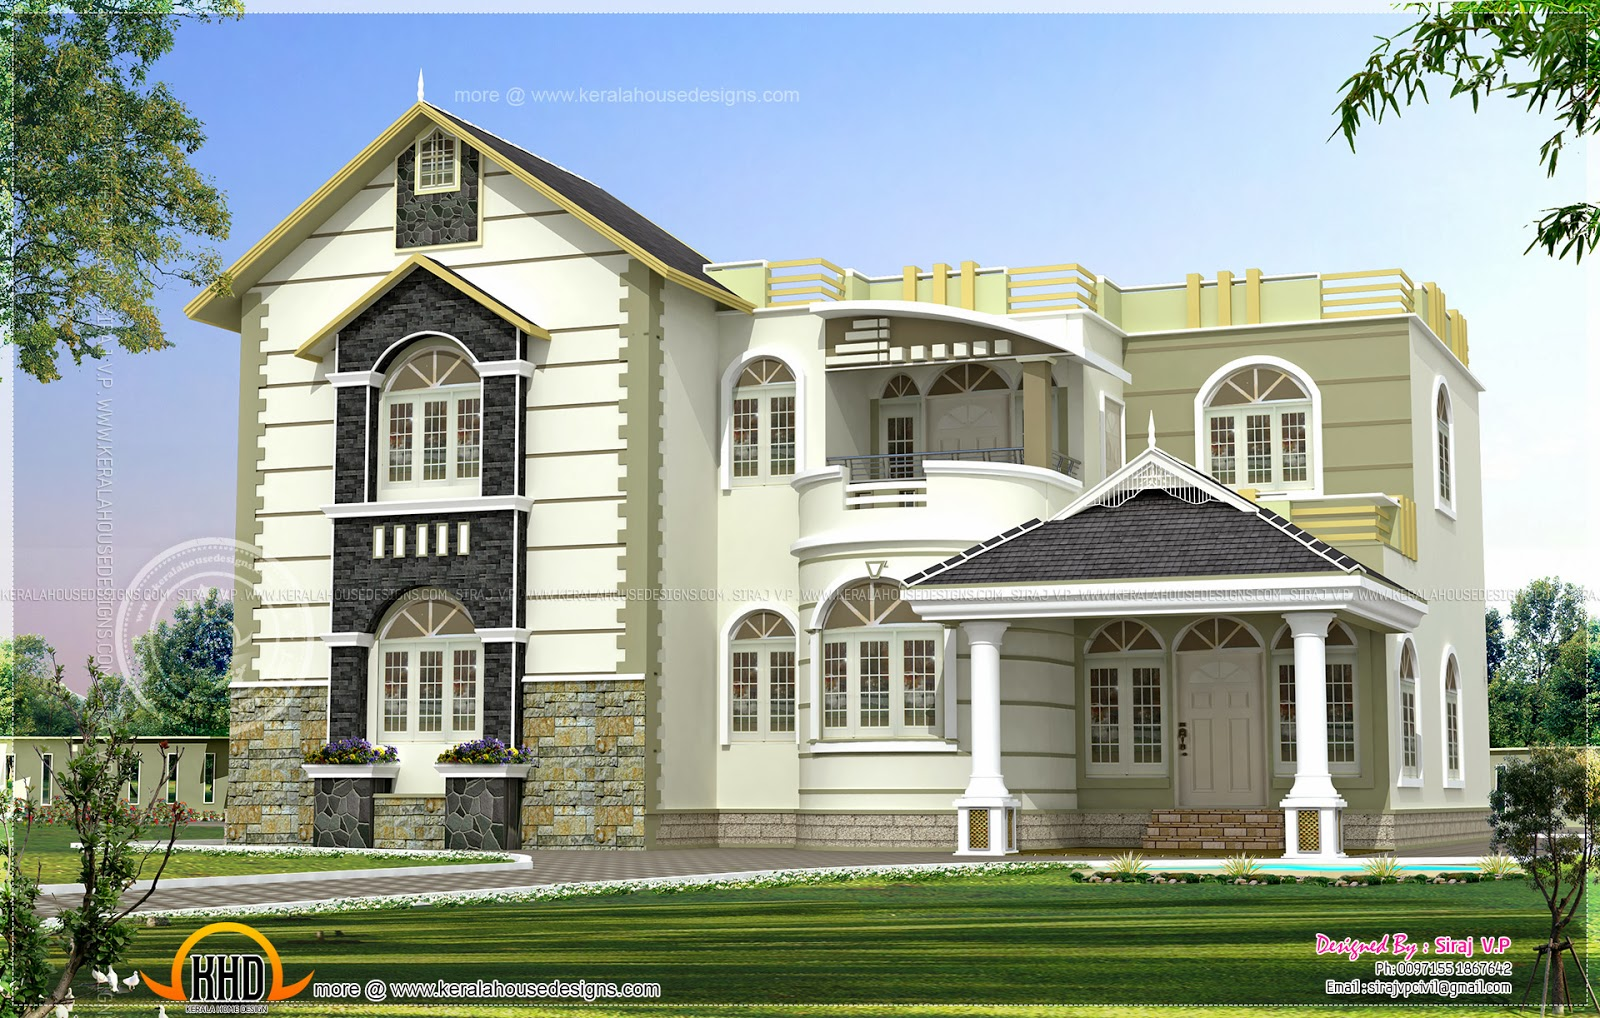 one house exterior design in two color combinations home kerala plans. Black Bedroom Furniture Sets. Home Design Ideas